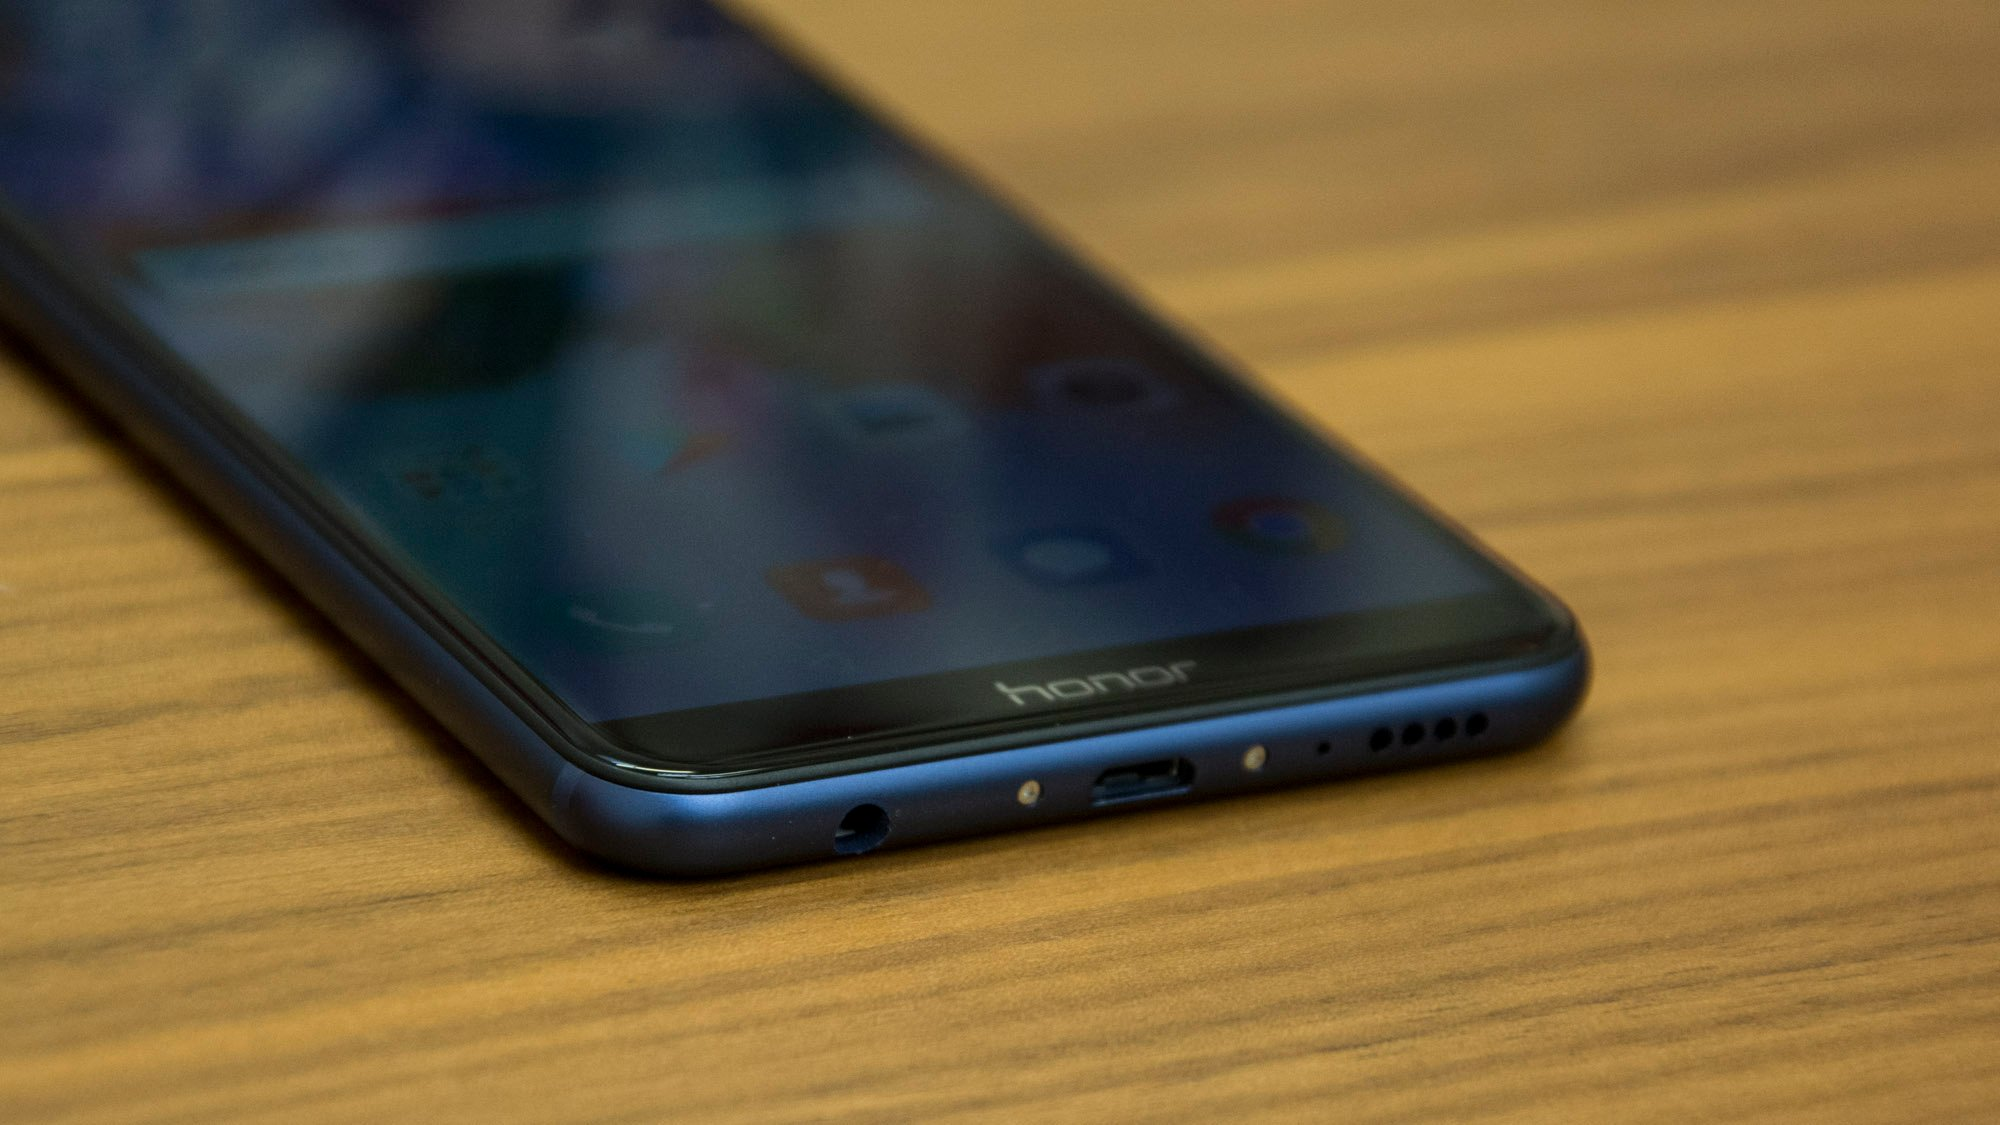 Honor 7X review: The mid-range smartphone king is now